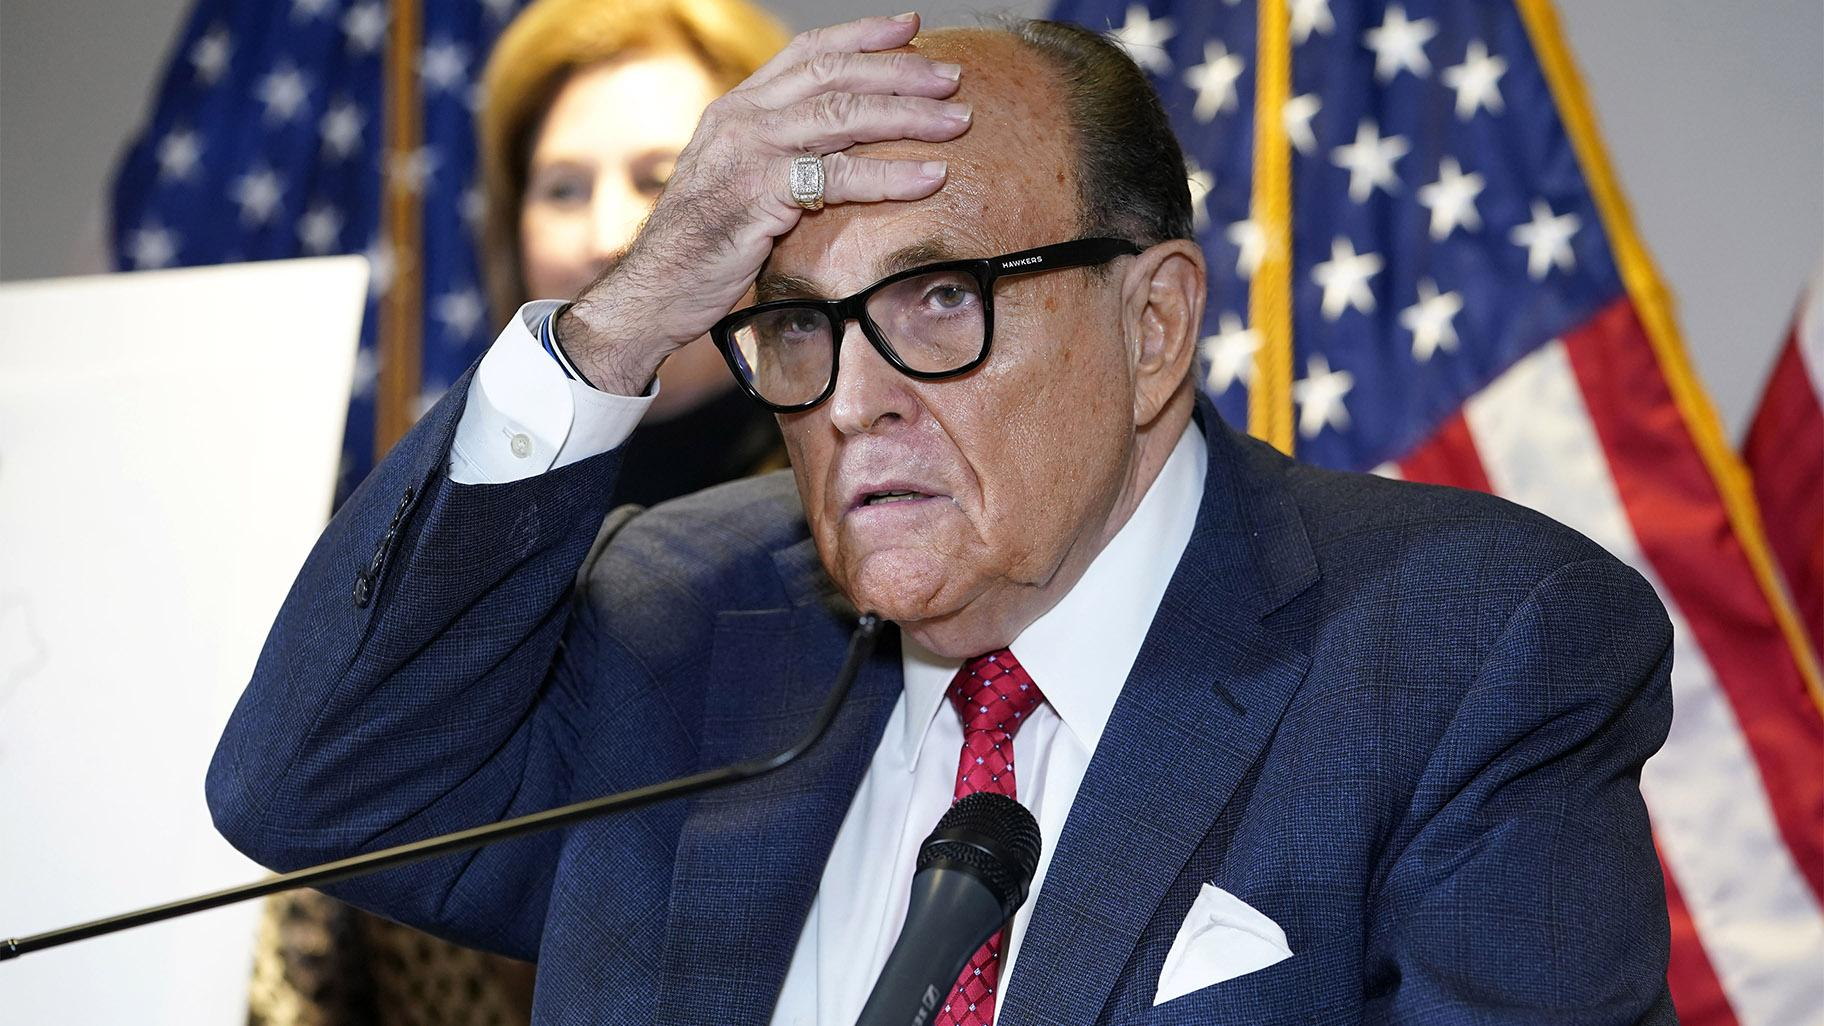 In this Nov. 19, 2020, file photo, former New York Mayor Rudy Giuliani, who was a lawyer for President Donald Trump, speaks during a news conference at the Republican National Committee headquarters in Washington. (AP Photo / Jacquelyn Martin, File)